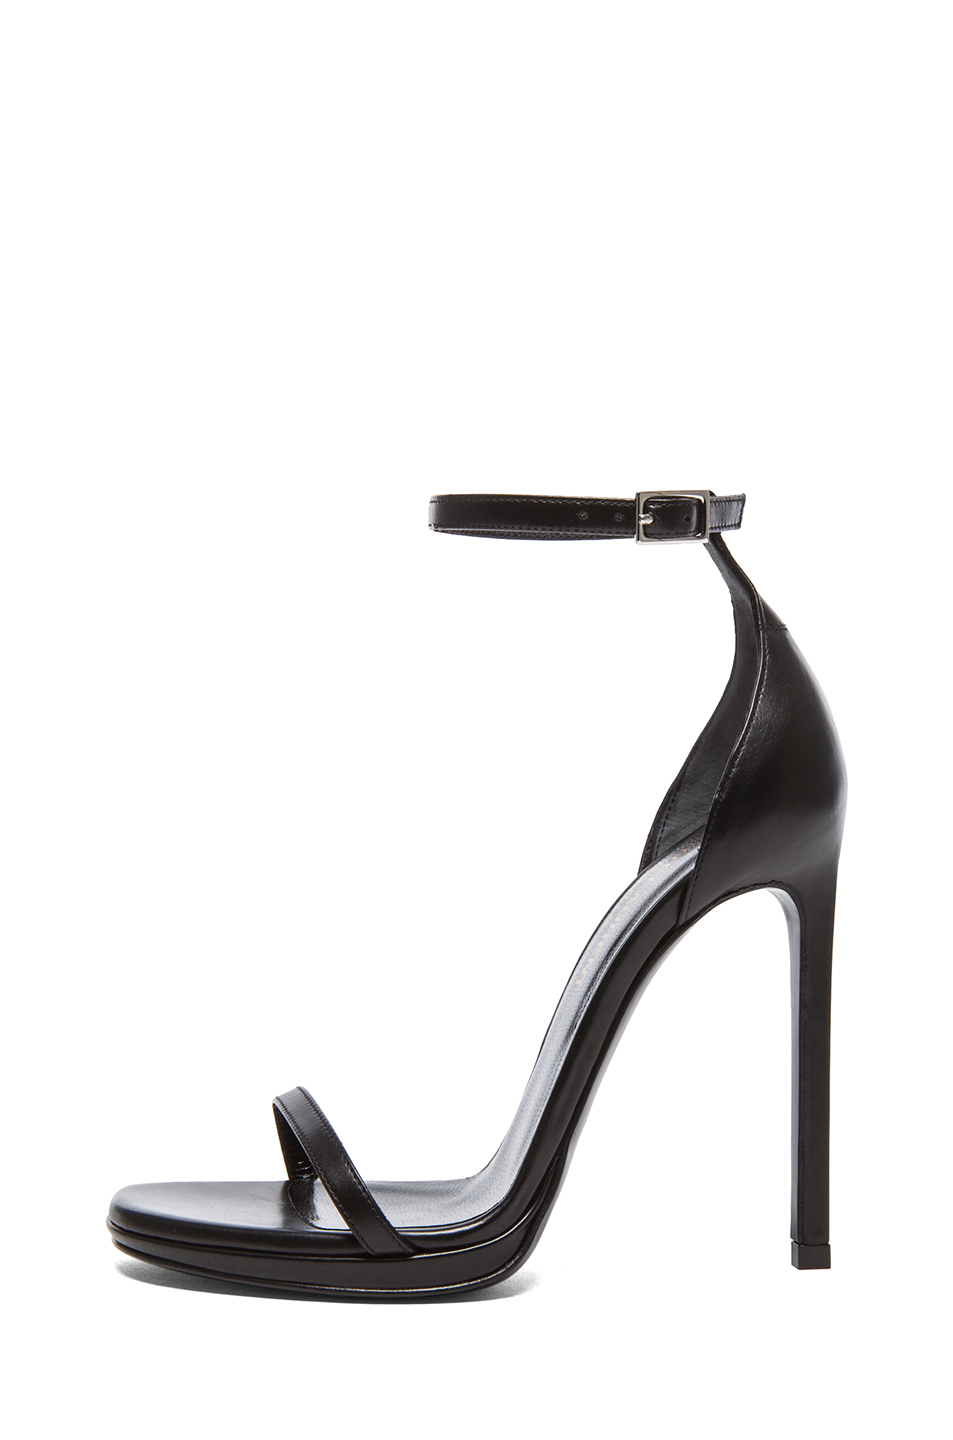 Jane leather ankle strap sandals in black